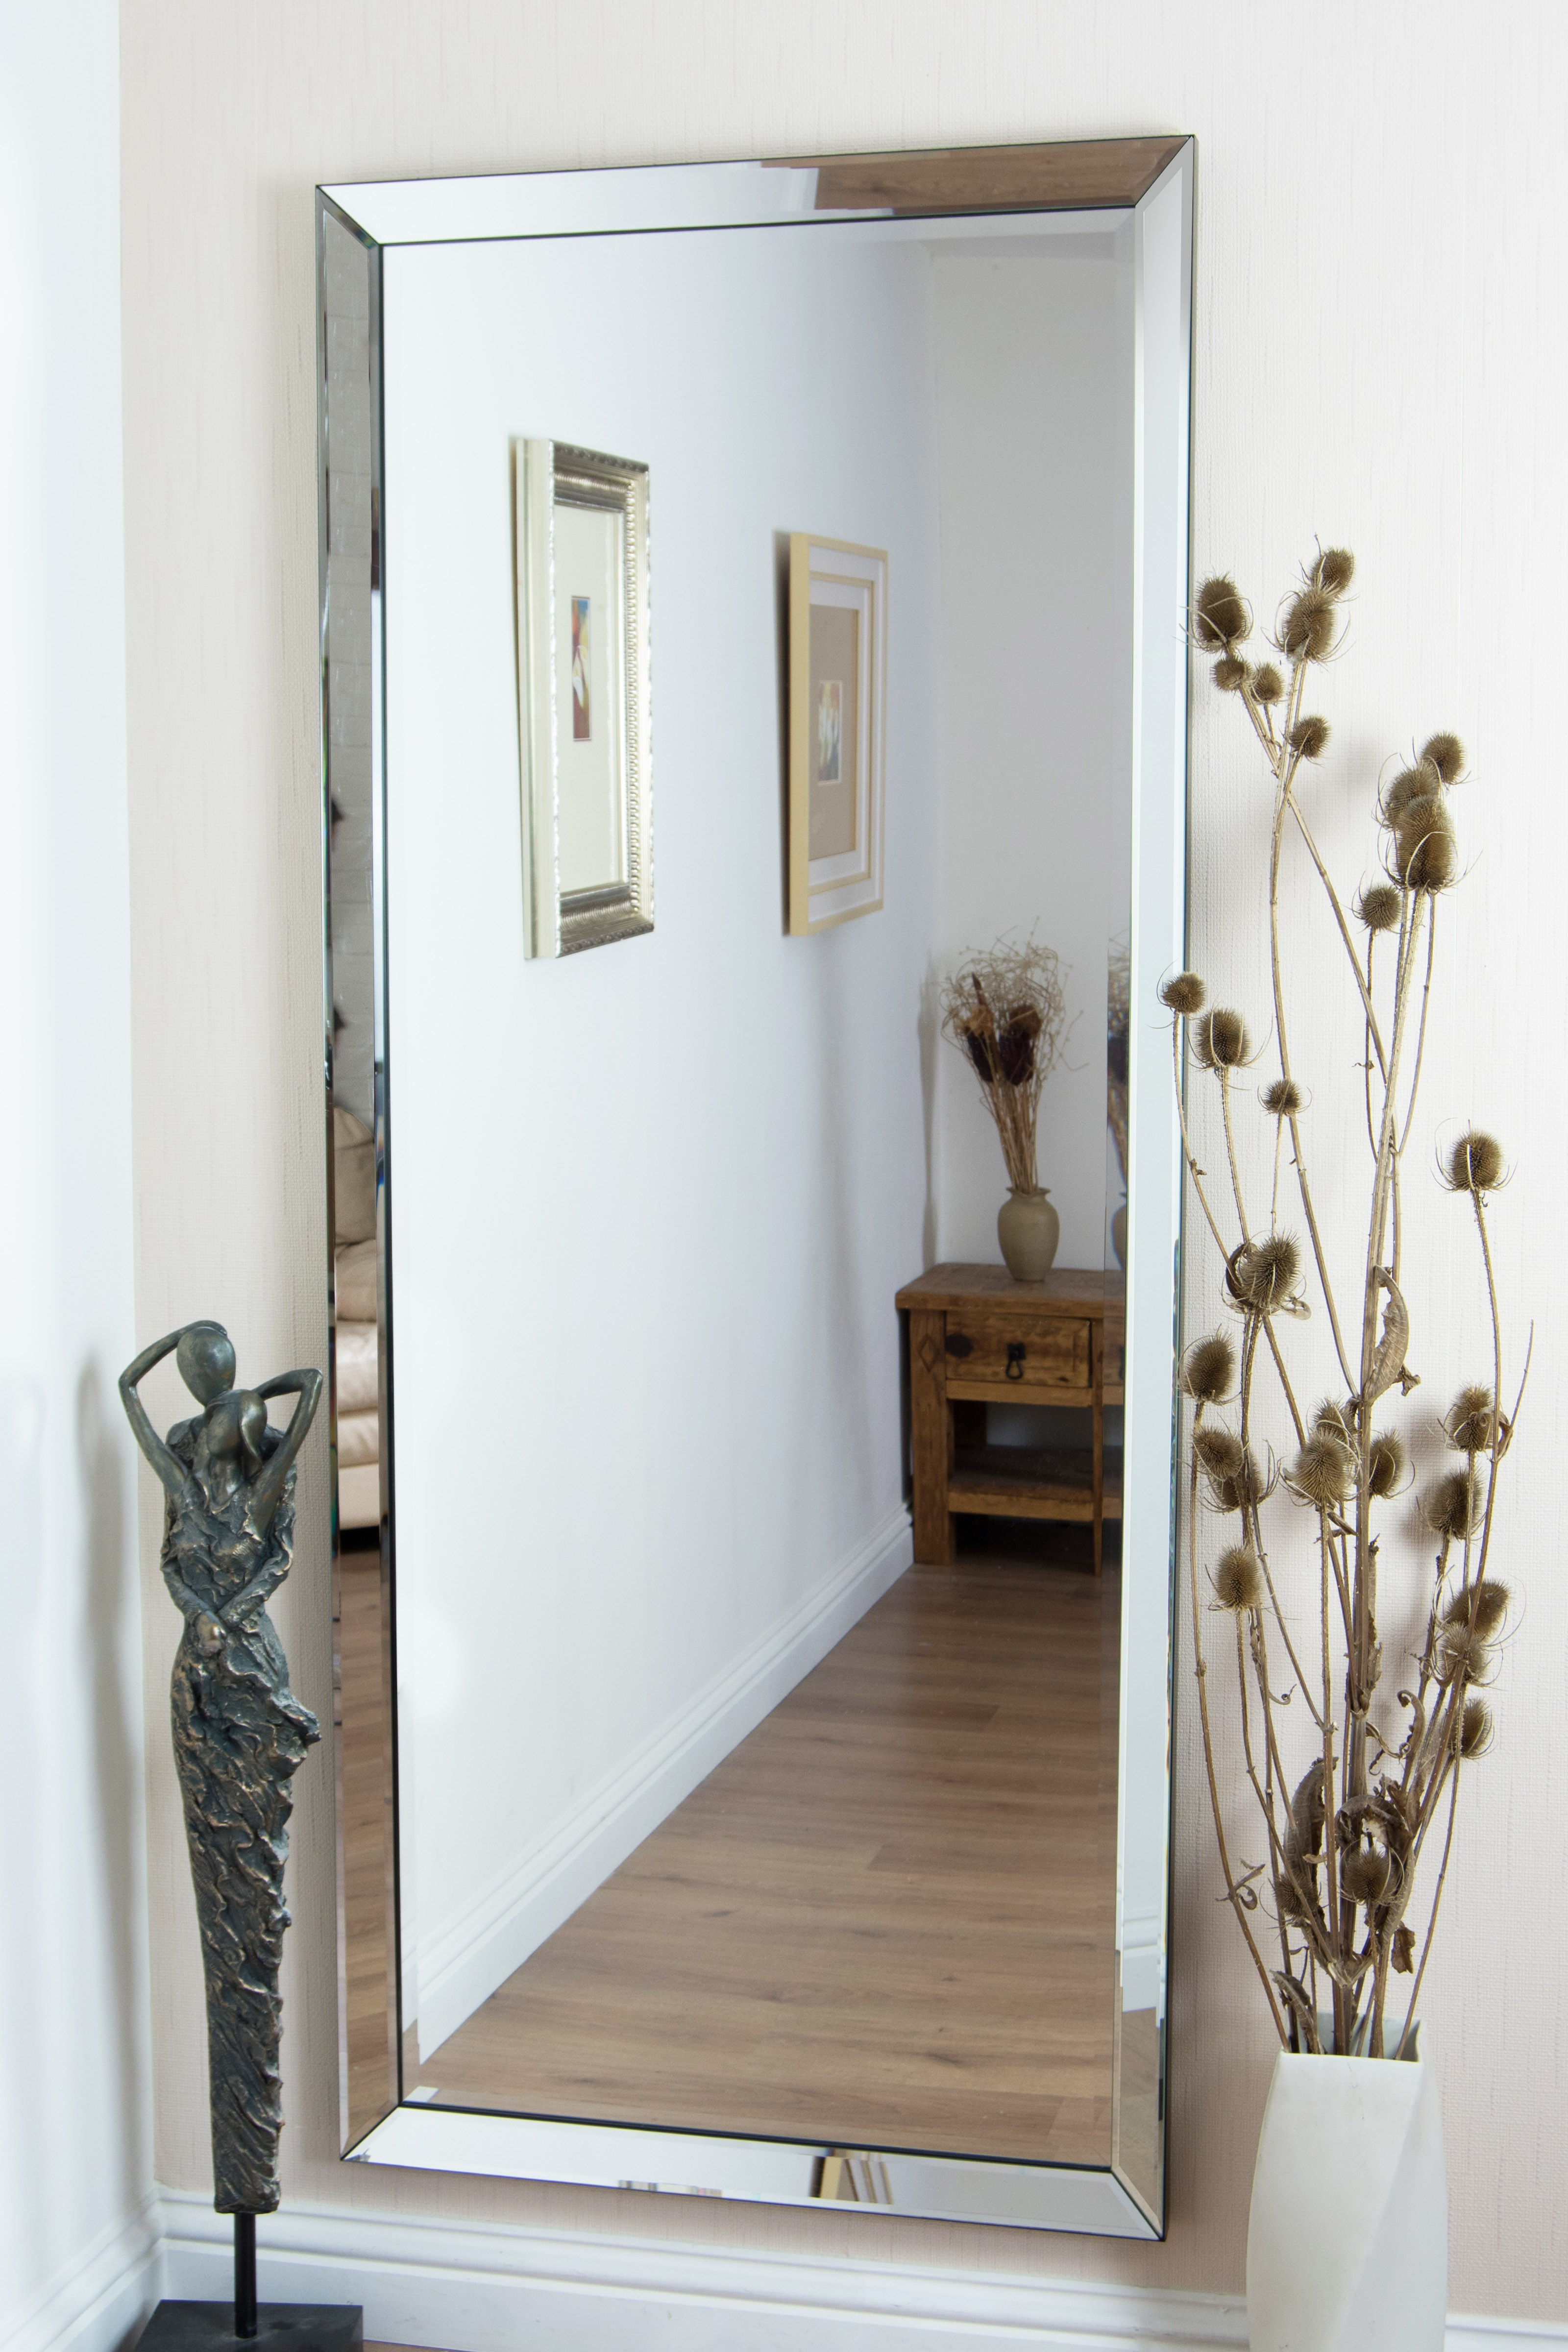 Interior Design : Wall Mirrors For Hallway Luxury Homely Ideas Big Intended For Trendy Wall Mirrors For Hallway (View 12 of 20)